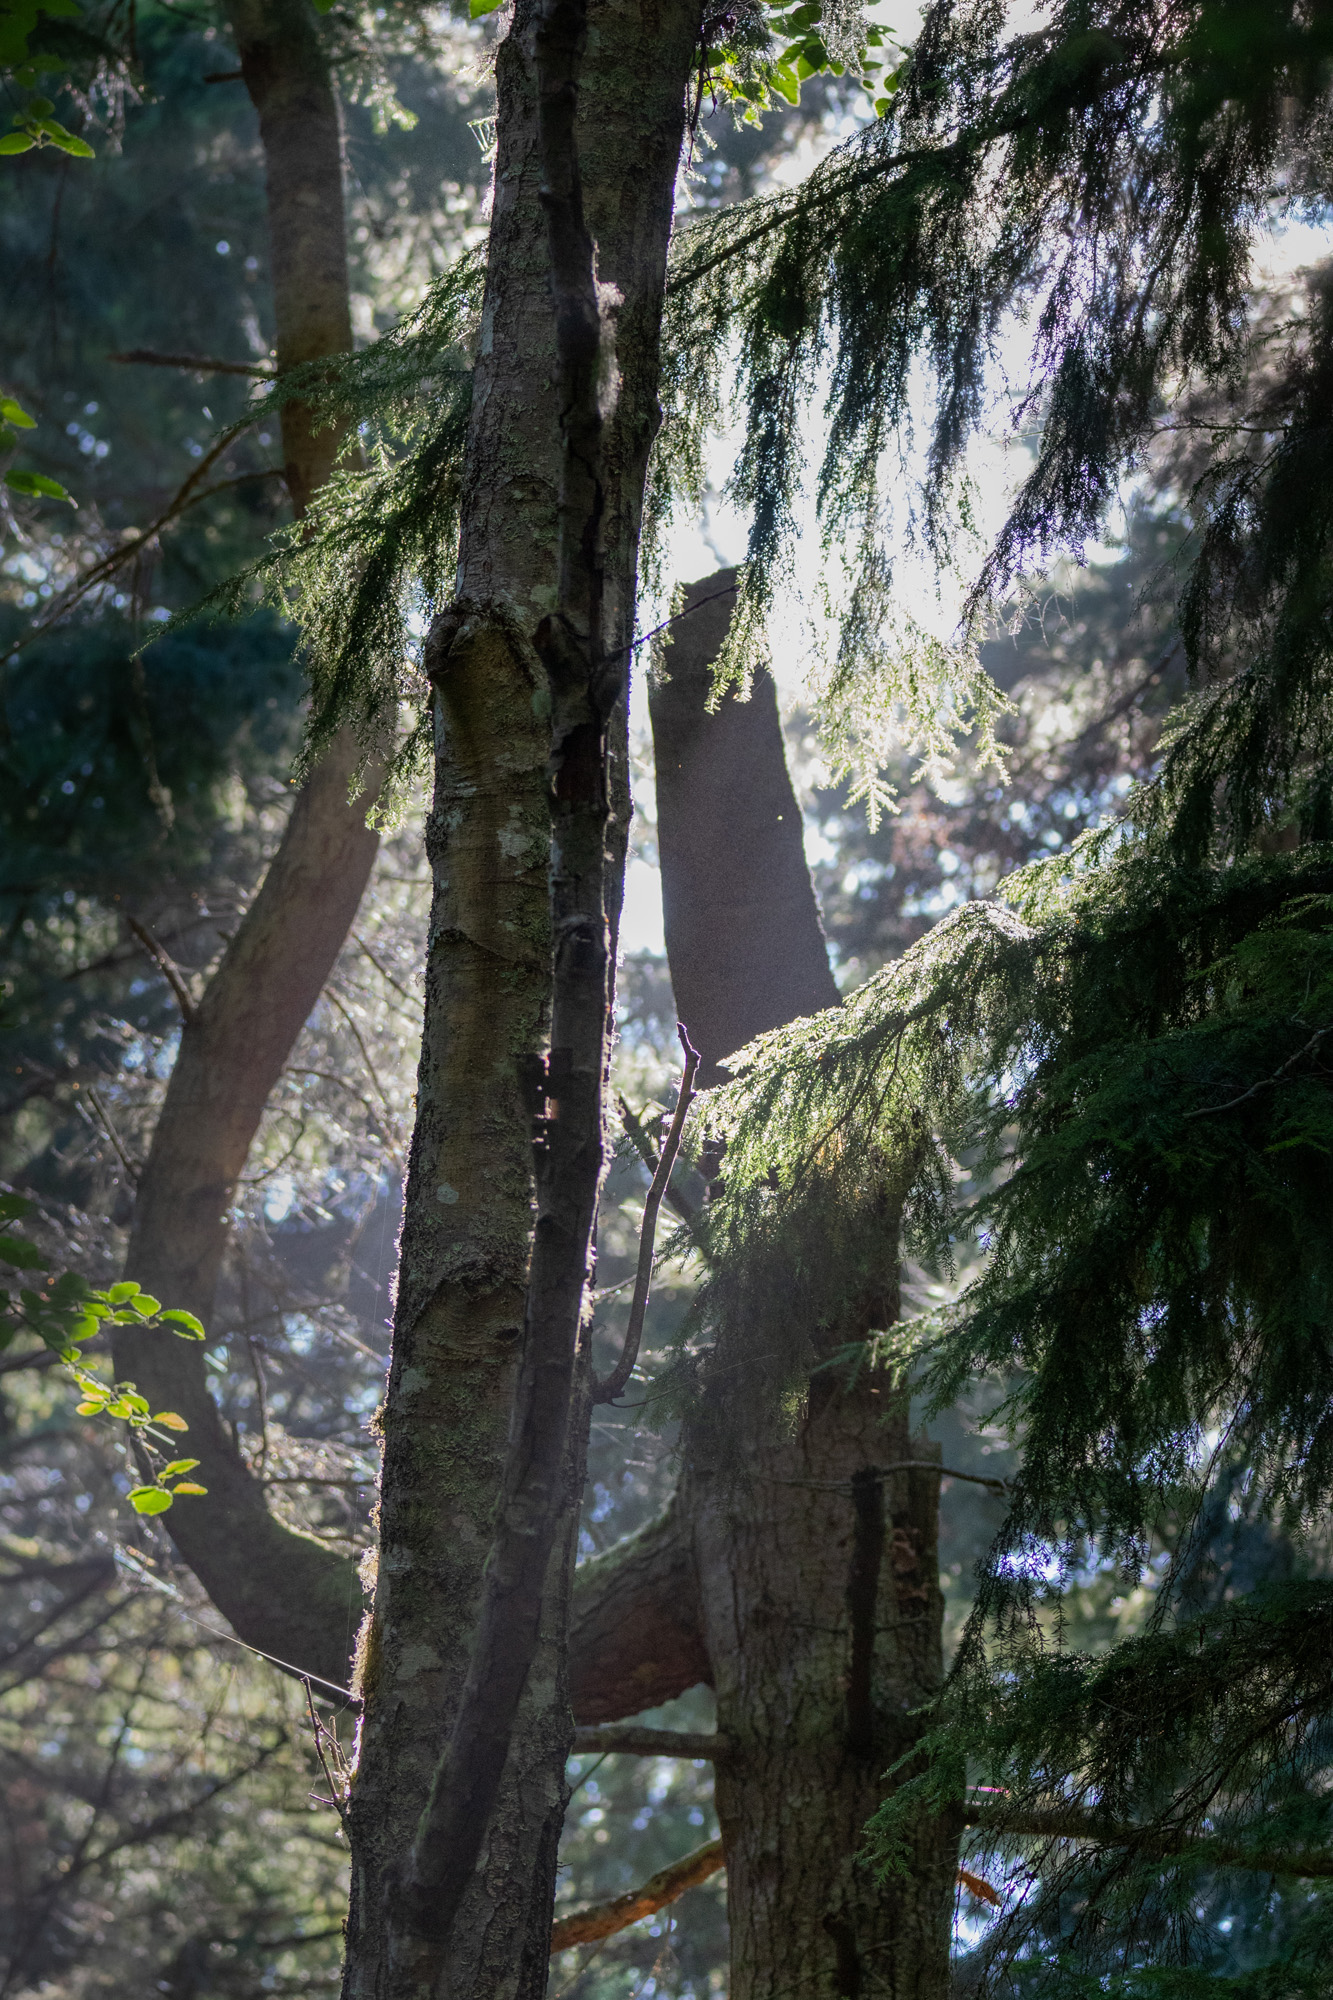 Trees and sunlight at Price Sculpture Forest by Gary Lemmon